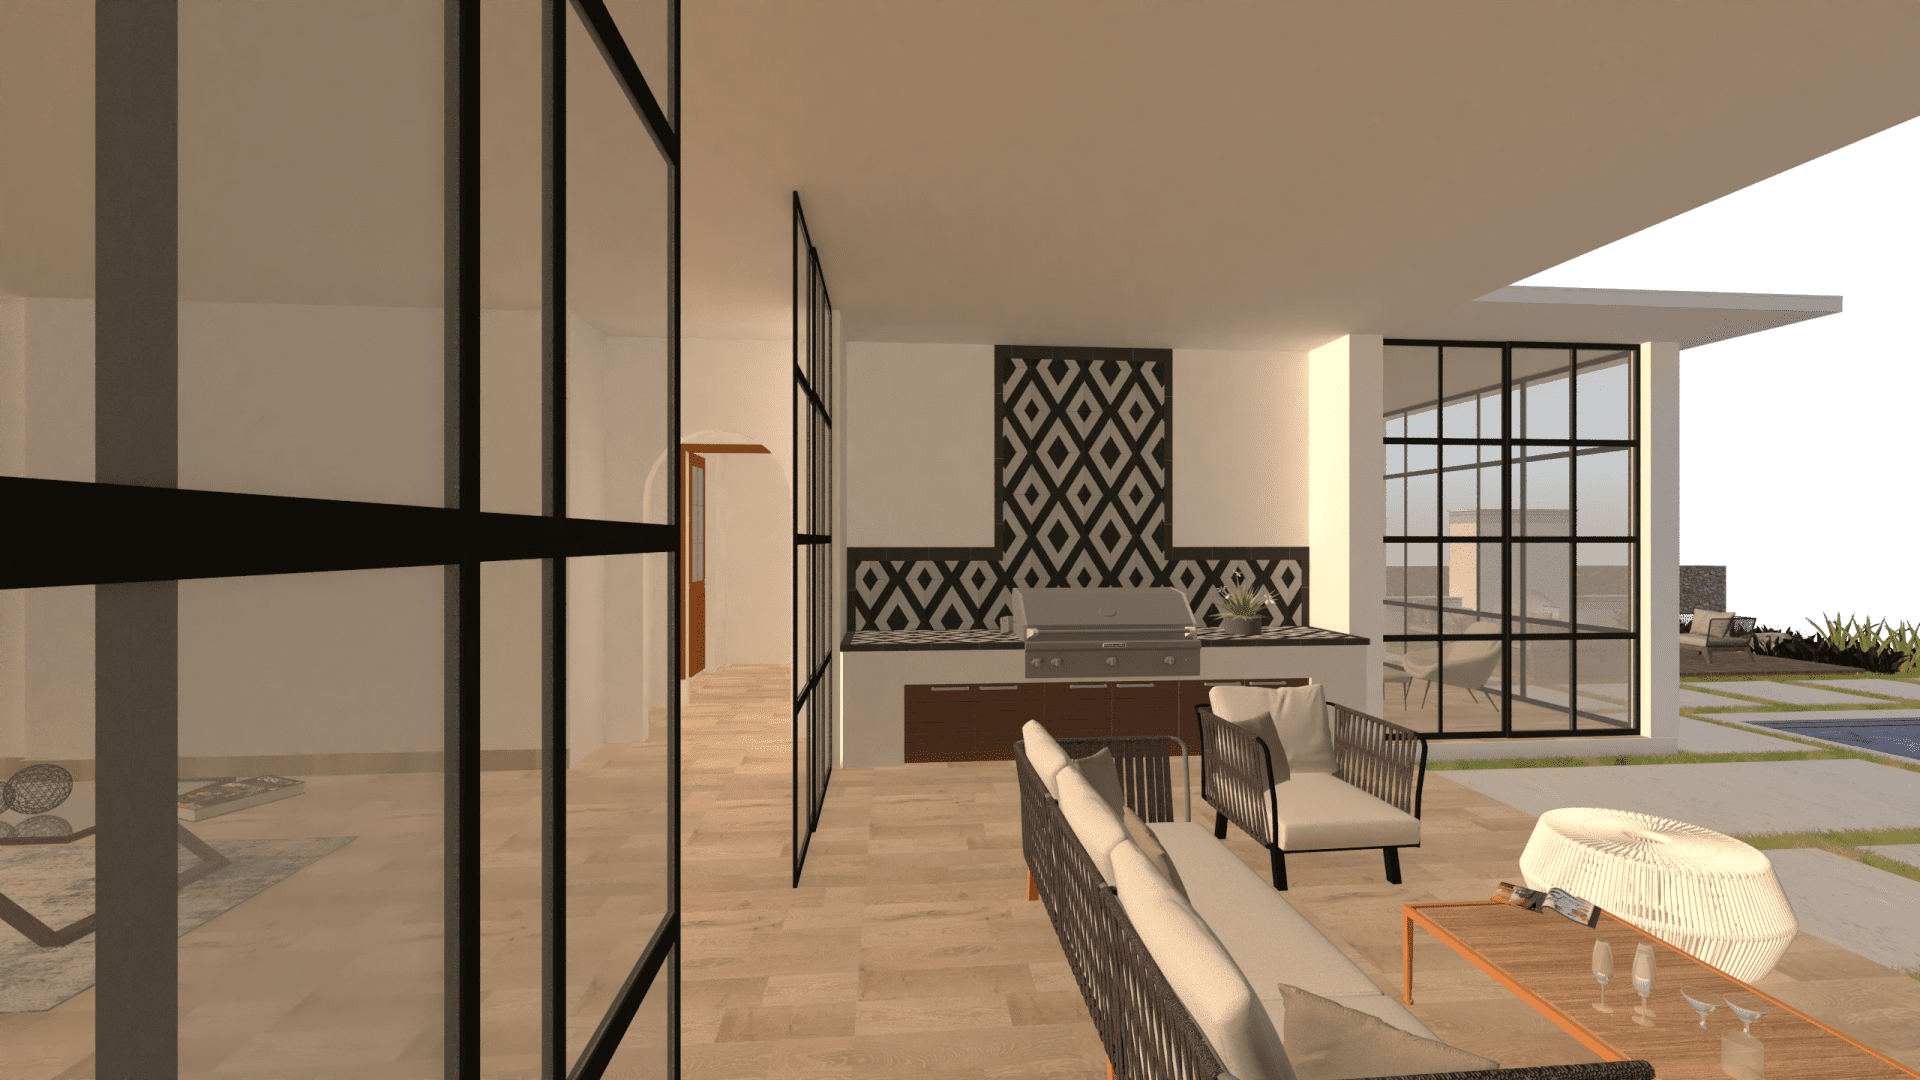 New Home Builders Midwick grill - Millennial Design + Build, Custom Home Builders in Dallas Texas, modern style homes, Property Evaluator, Interior Designers, using BIM Technology and Home 3D Model.